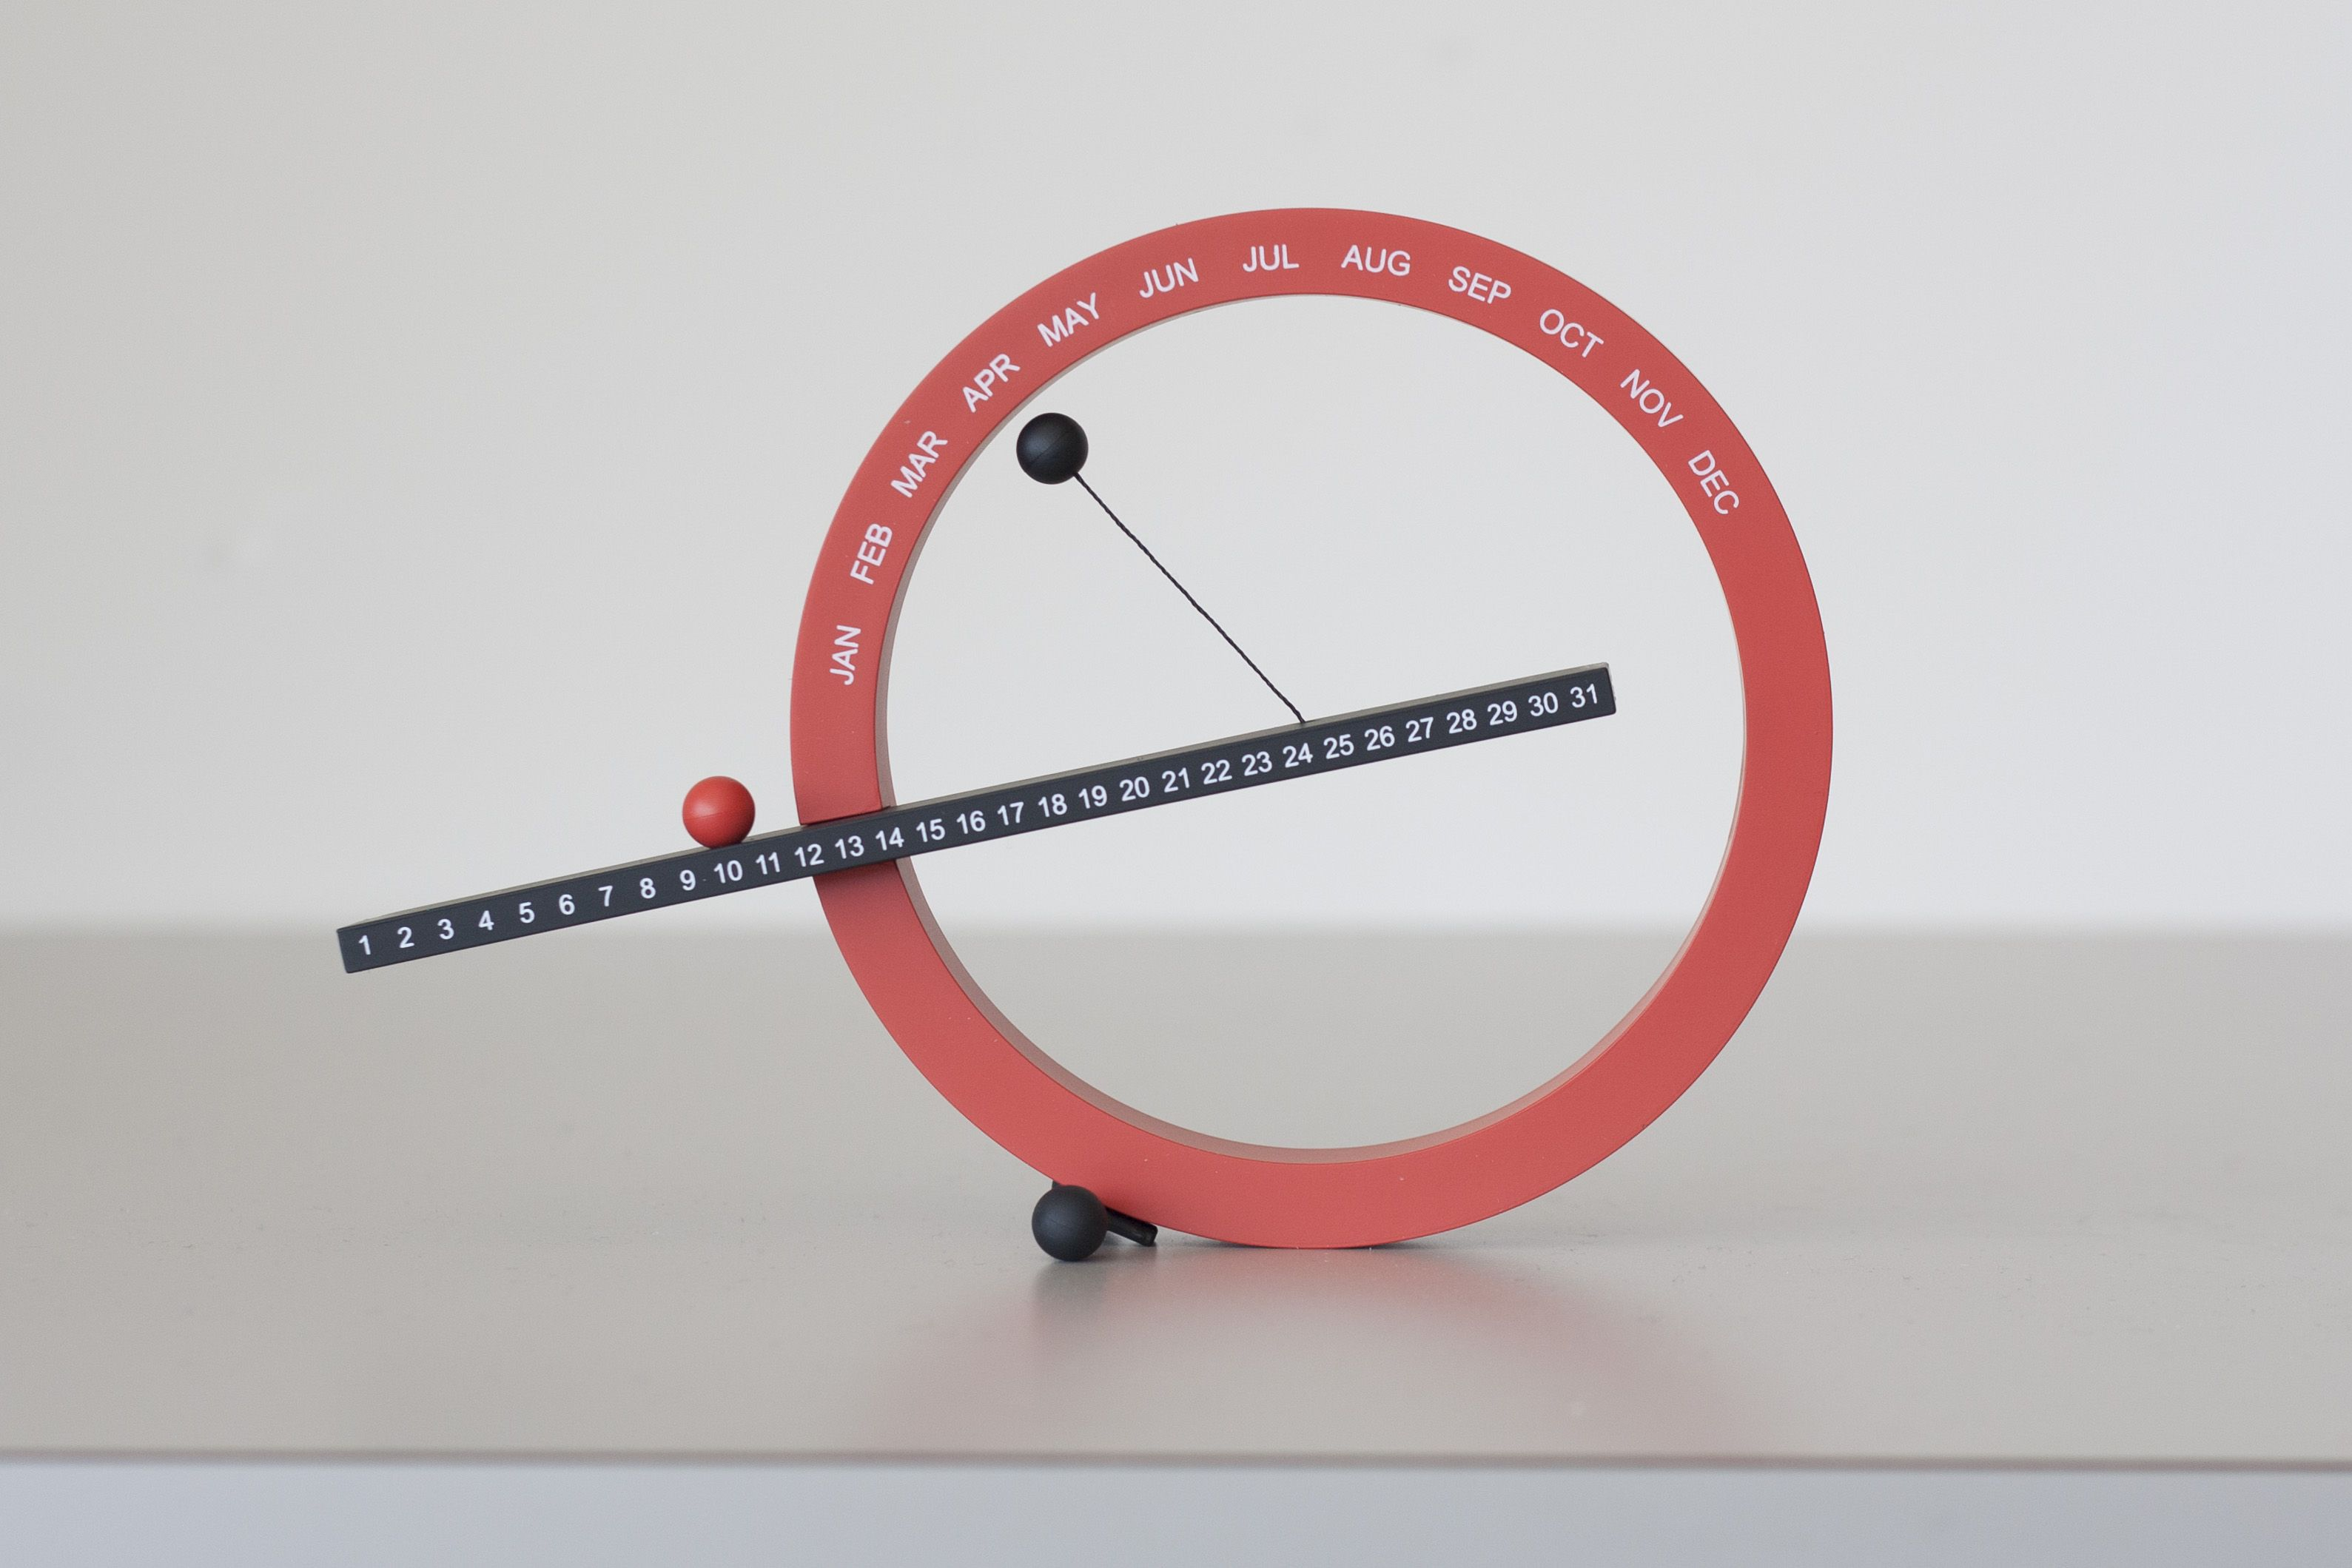 @Joanna Kressaty Design Store PERPETUAL CALENDAR was designed by CA-based industrial designer Gideon Dagan. This clever desktop calendar was designed to be used year after year by moving magnetic balls manually to mark the date and month.